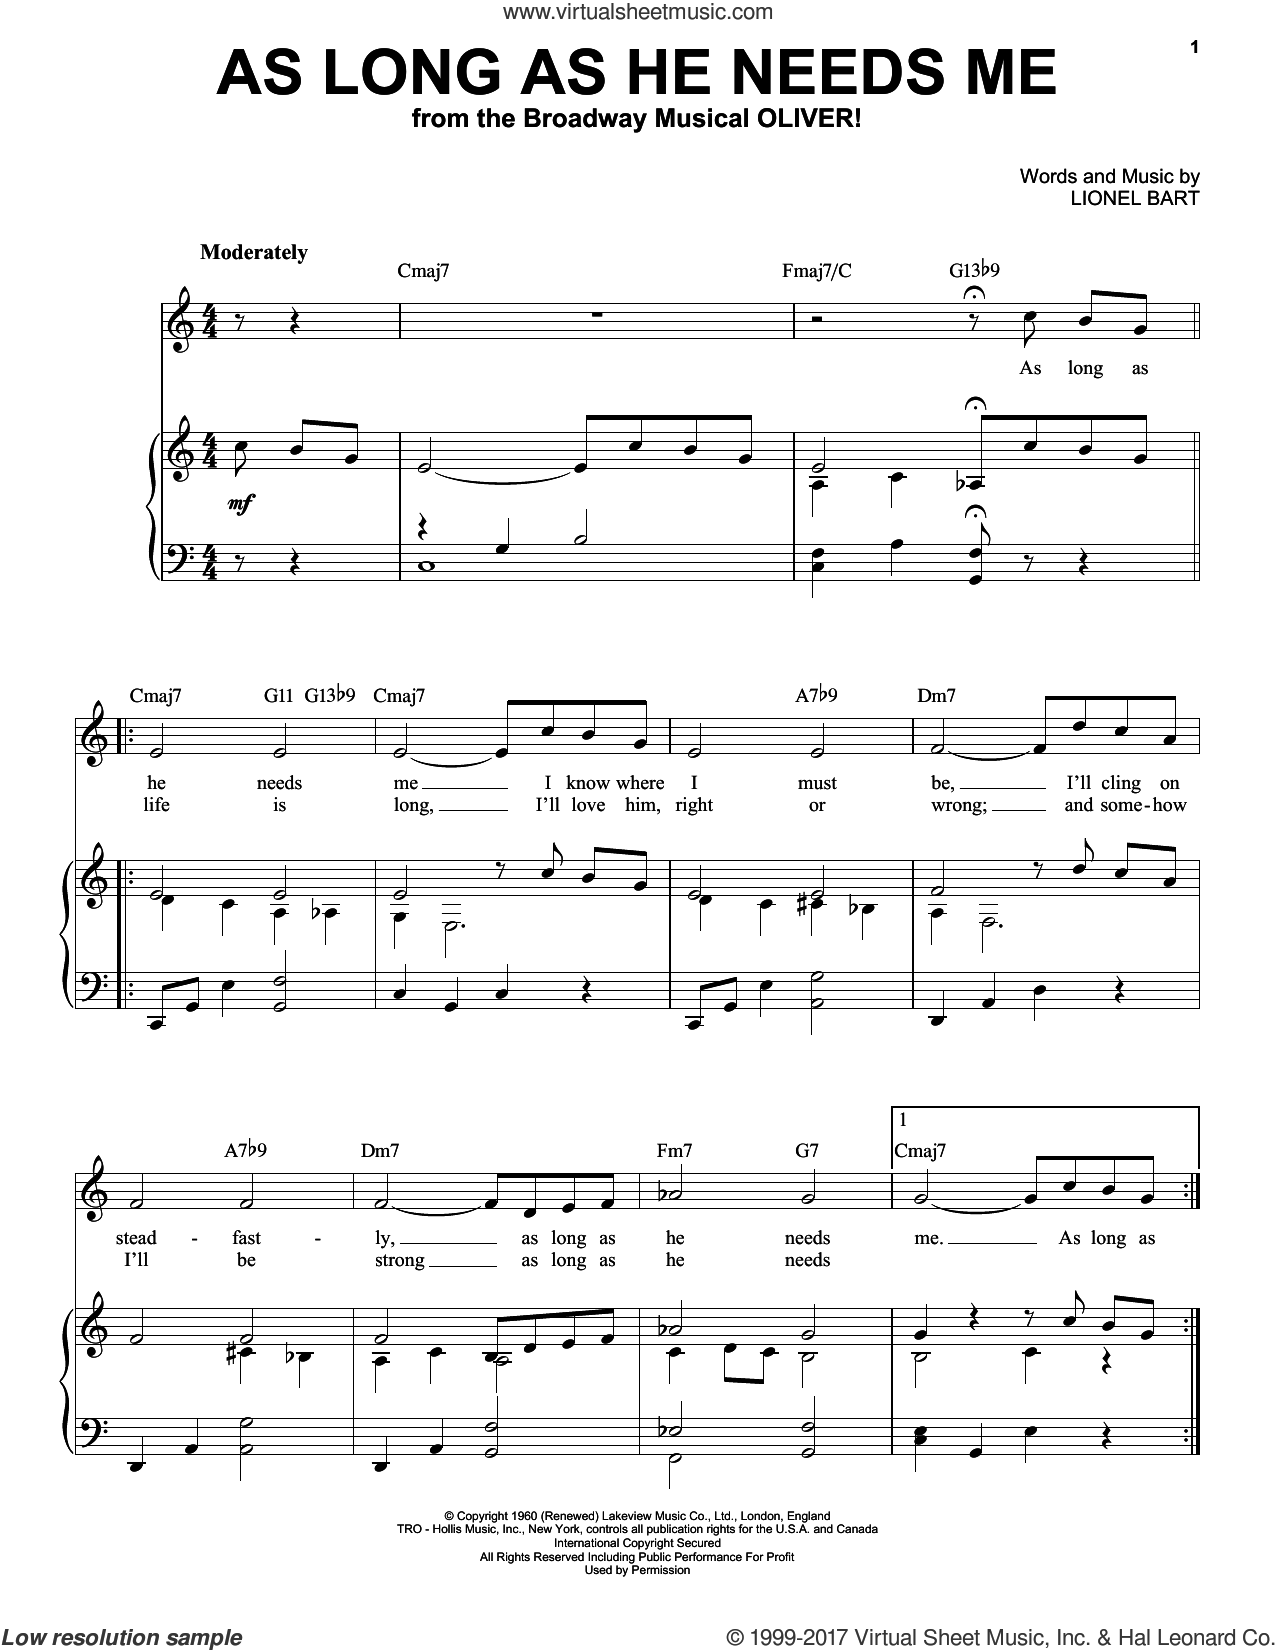 As Long As He Needs Me sheet music for voice and piano (High Voice) by Lionel Bart, intermediate skill level